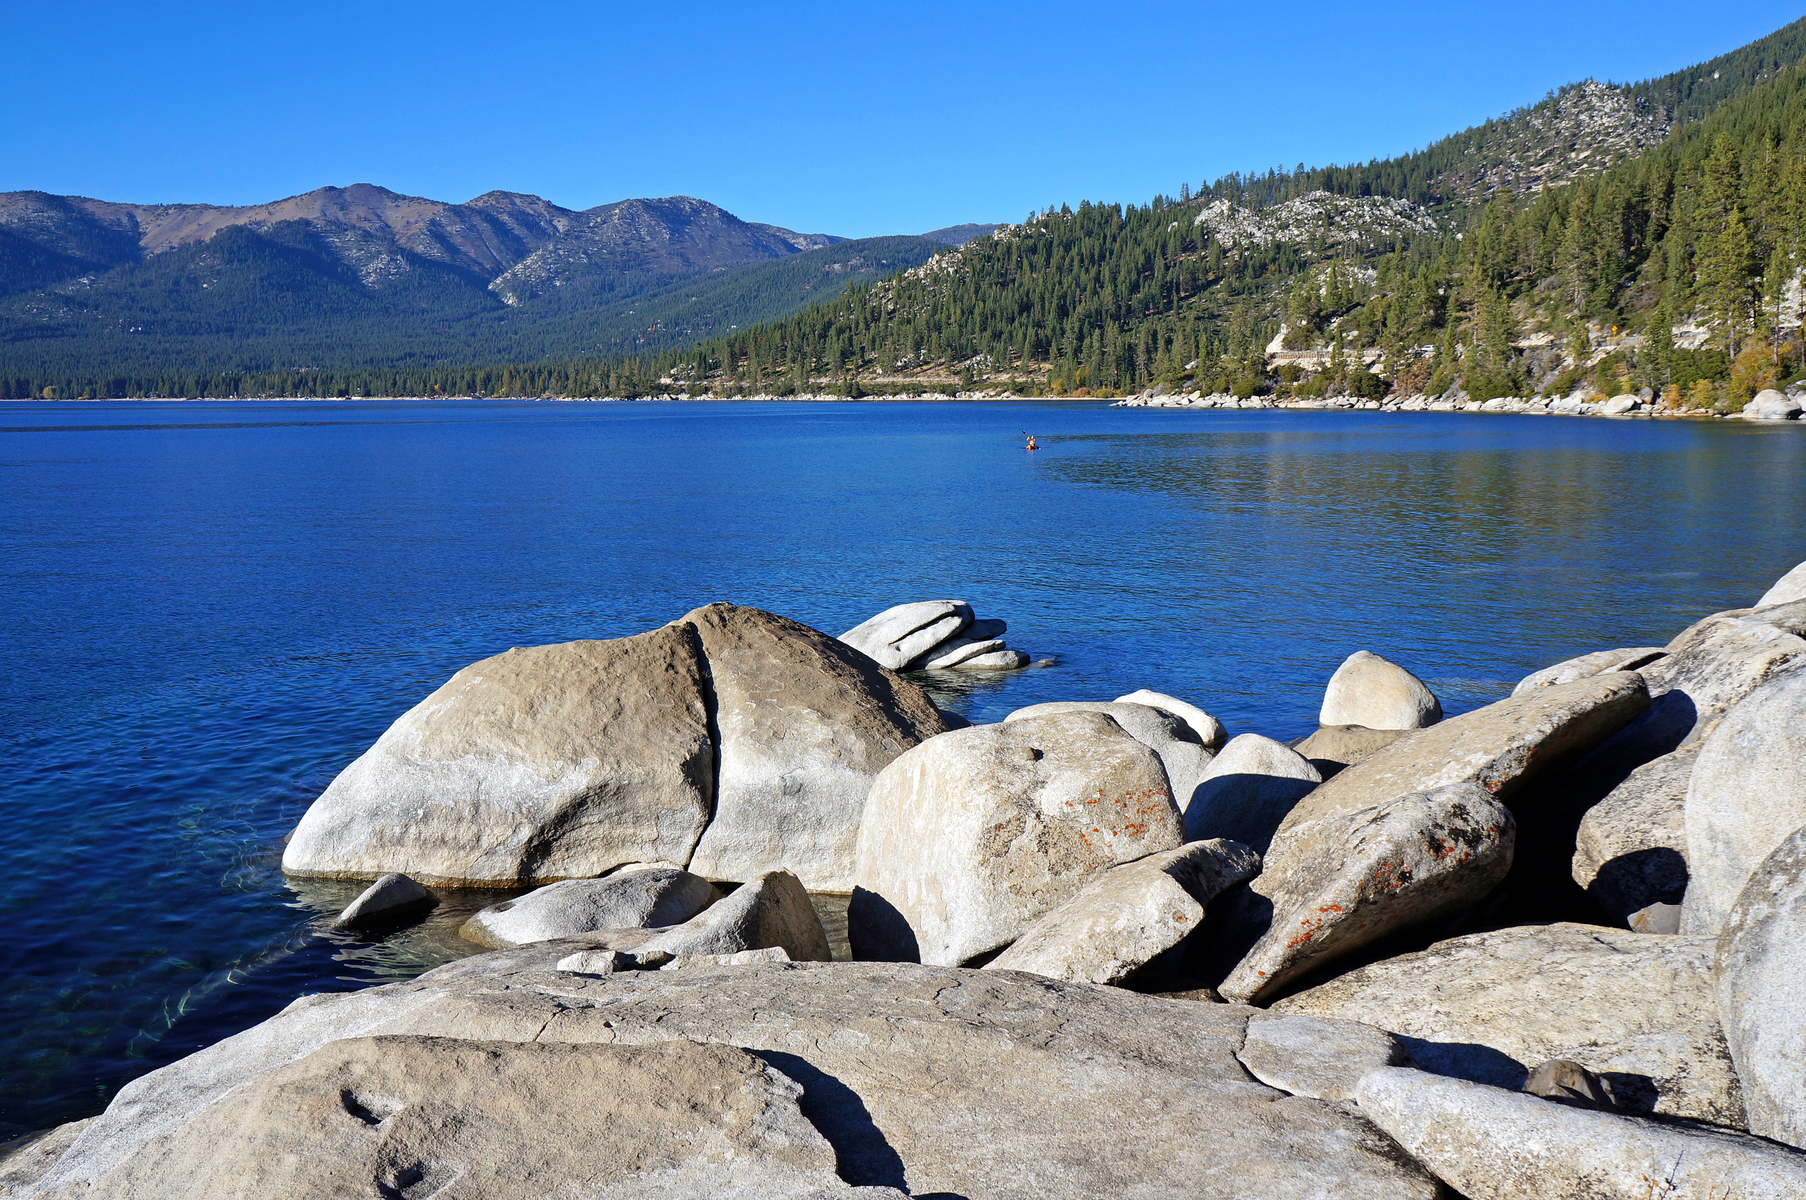 east shore south of Incline Village, Nevada